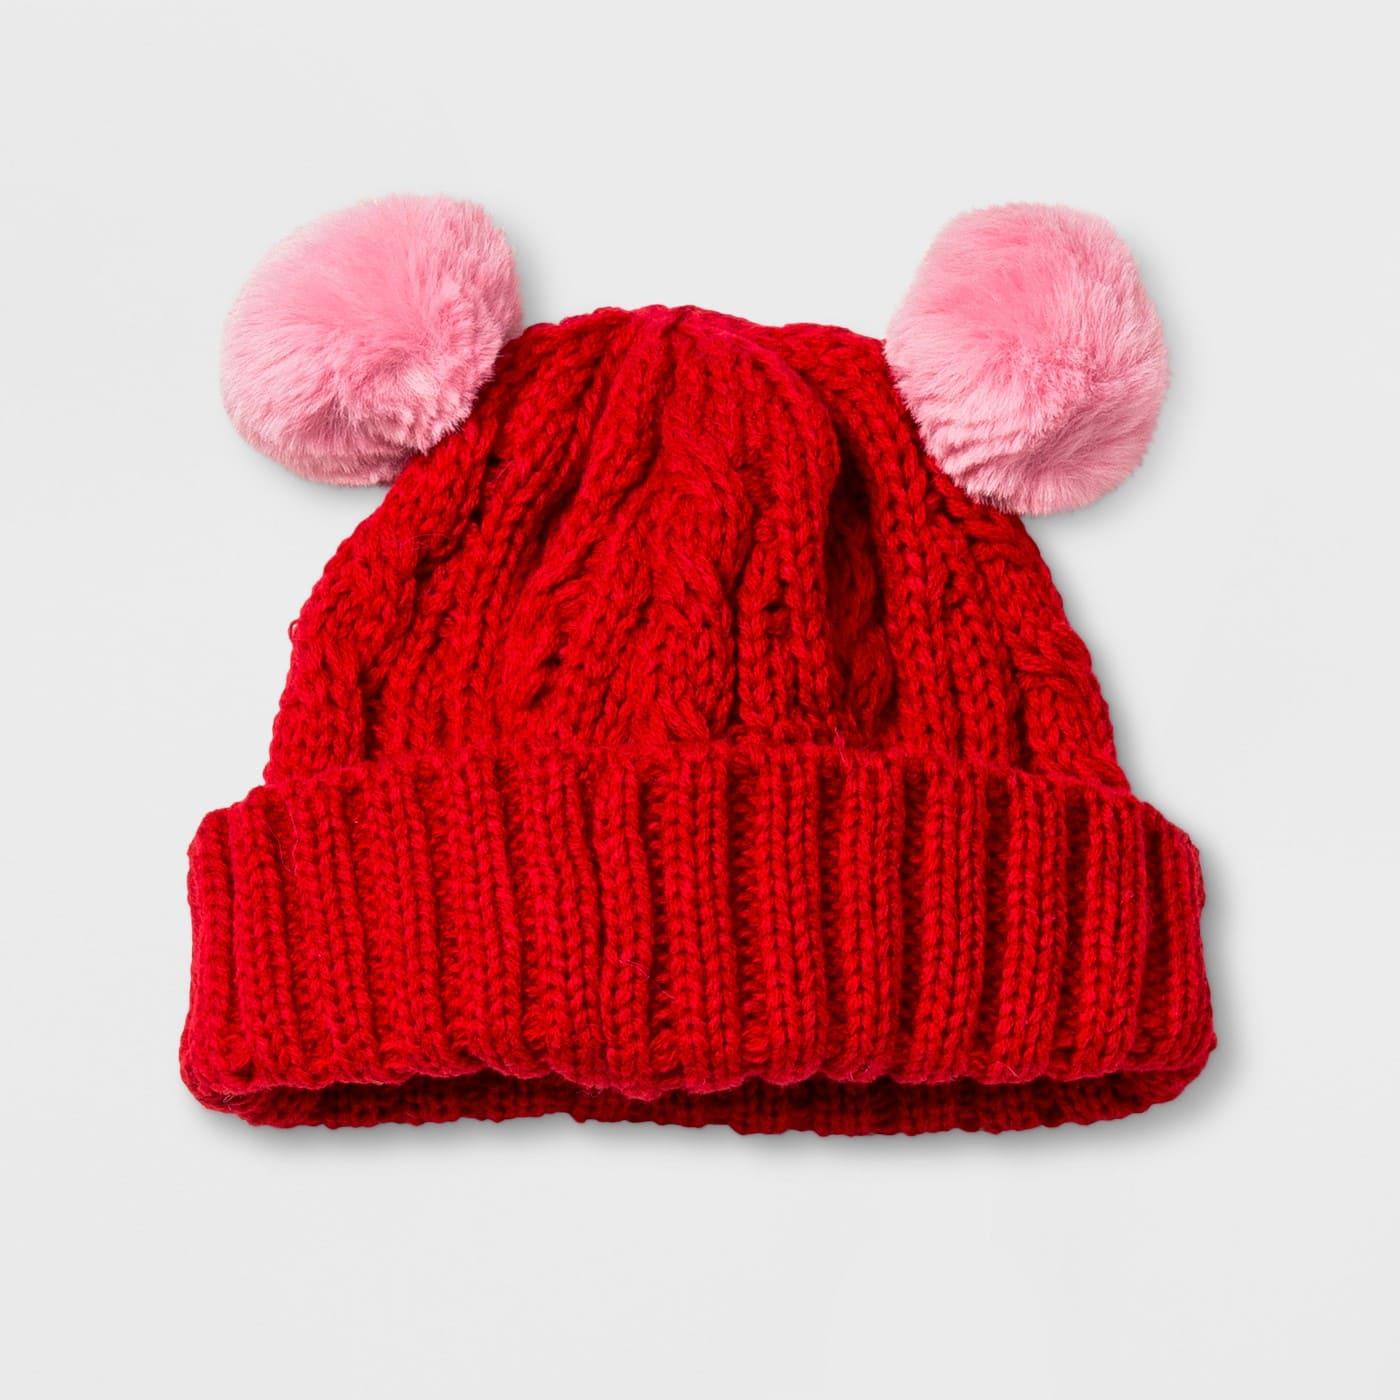 Cat   Jack Baby Cable Beanie with Poms  3.79 w Red Card - Target - Free  Shipping 3e8e0c4a997